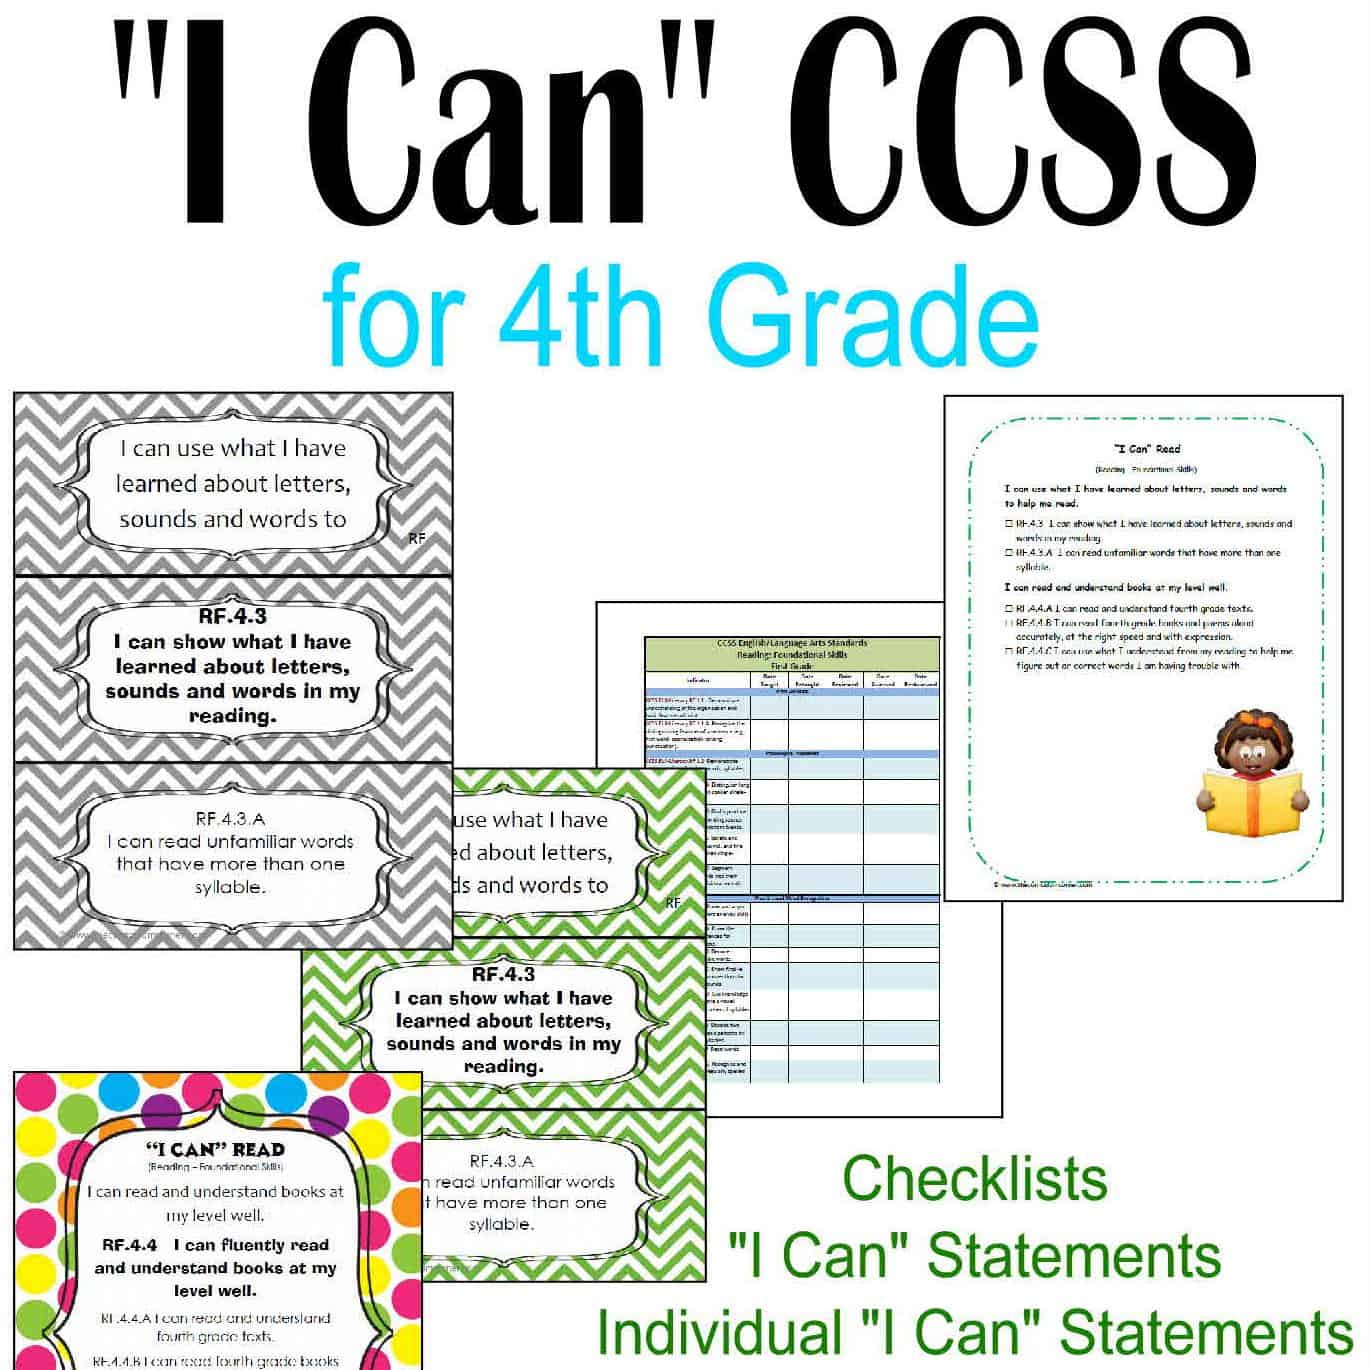 Everything I Can Common Core For 4th Grade